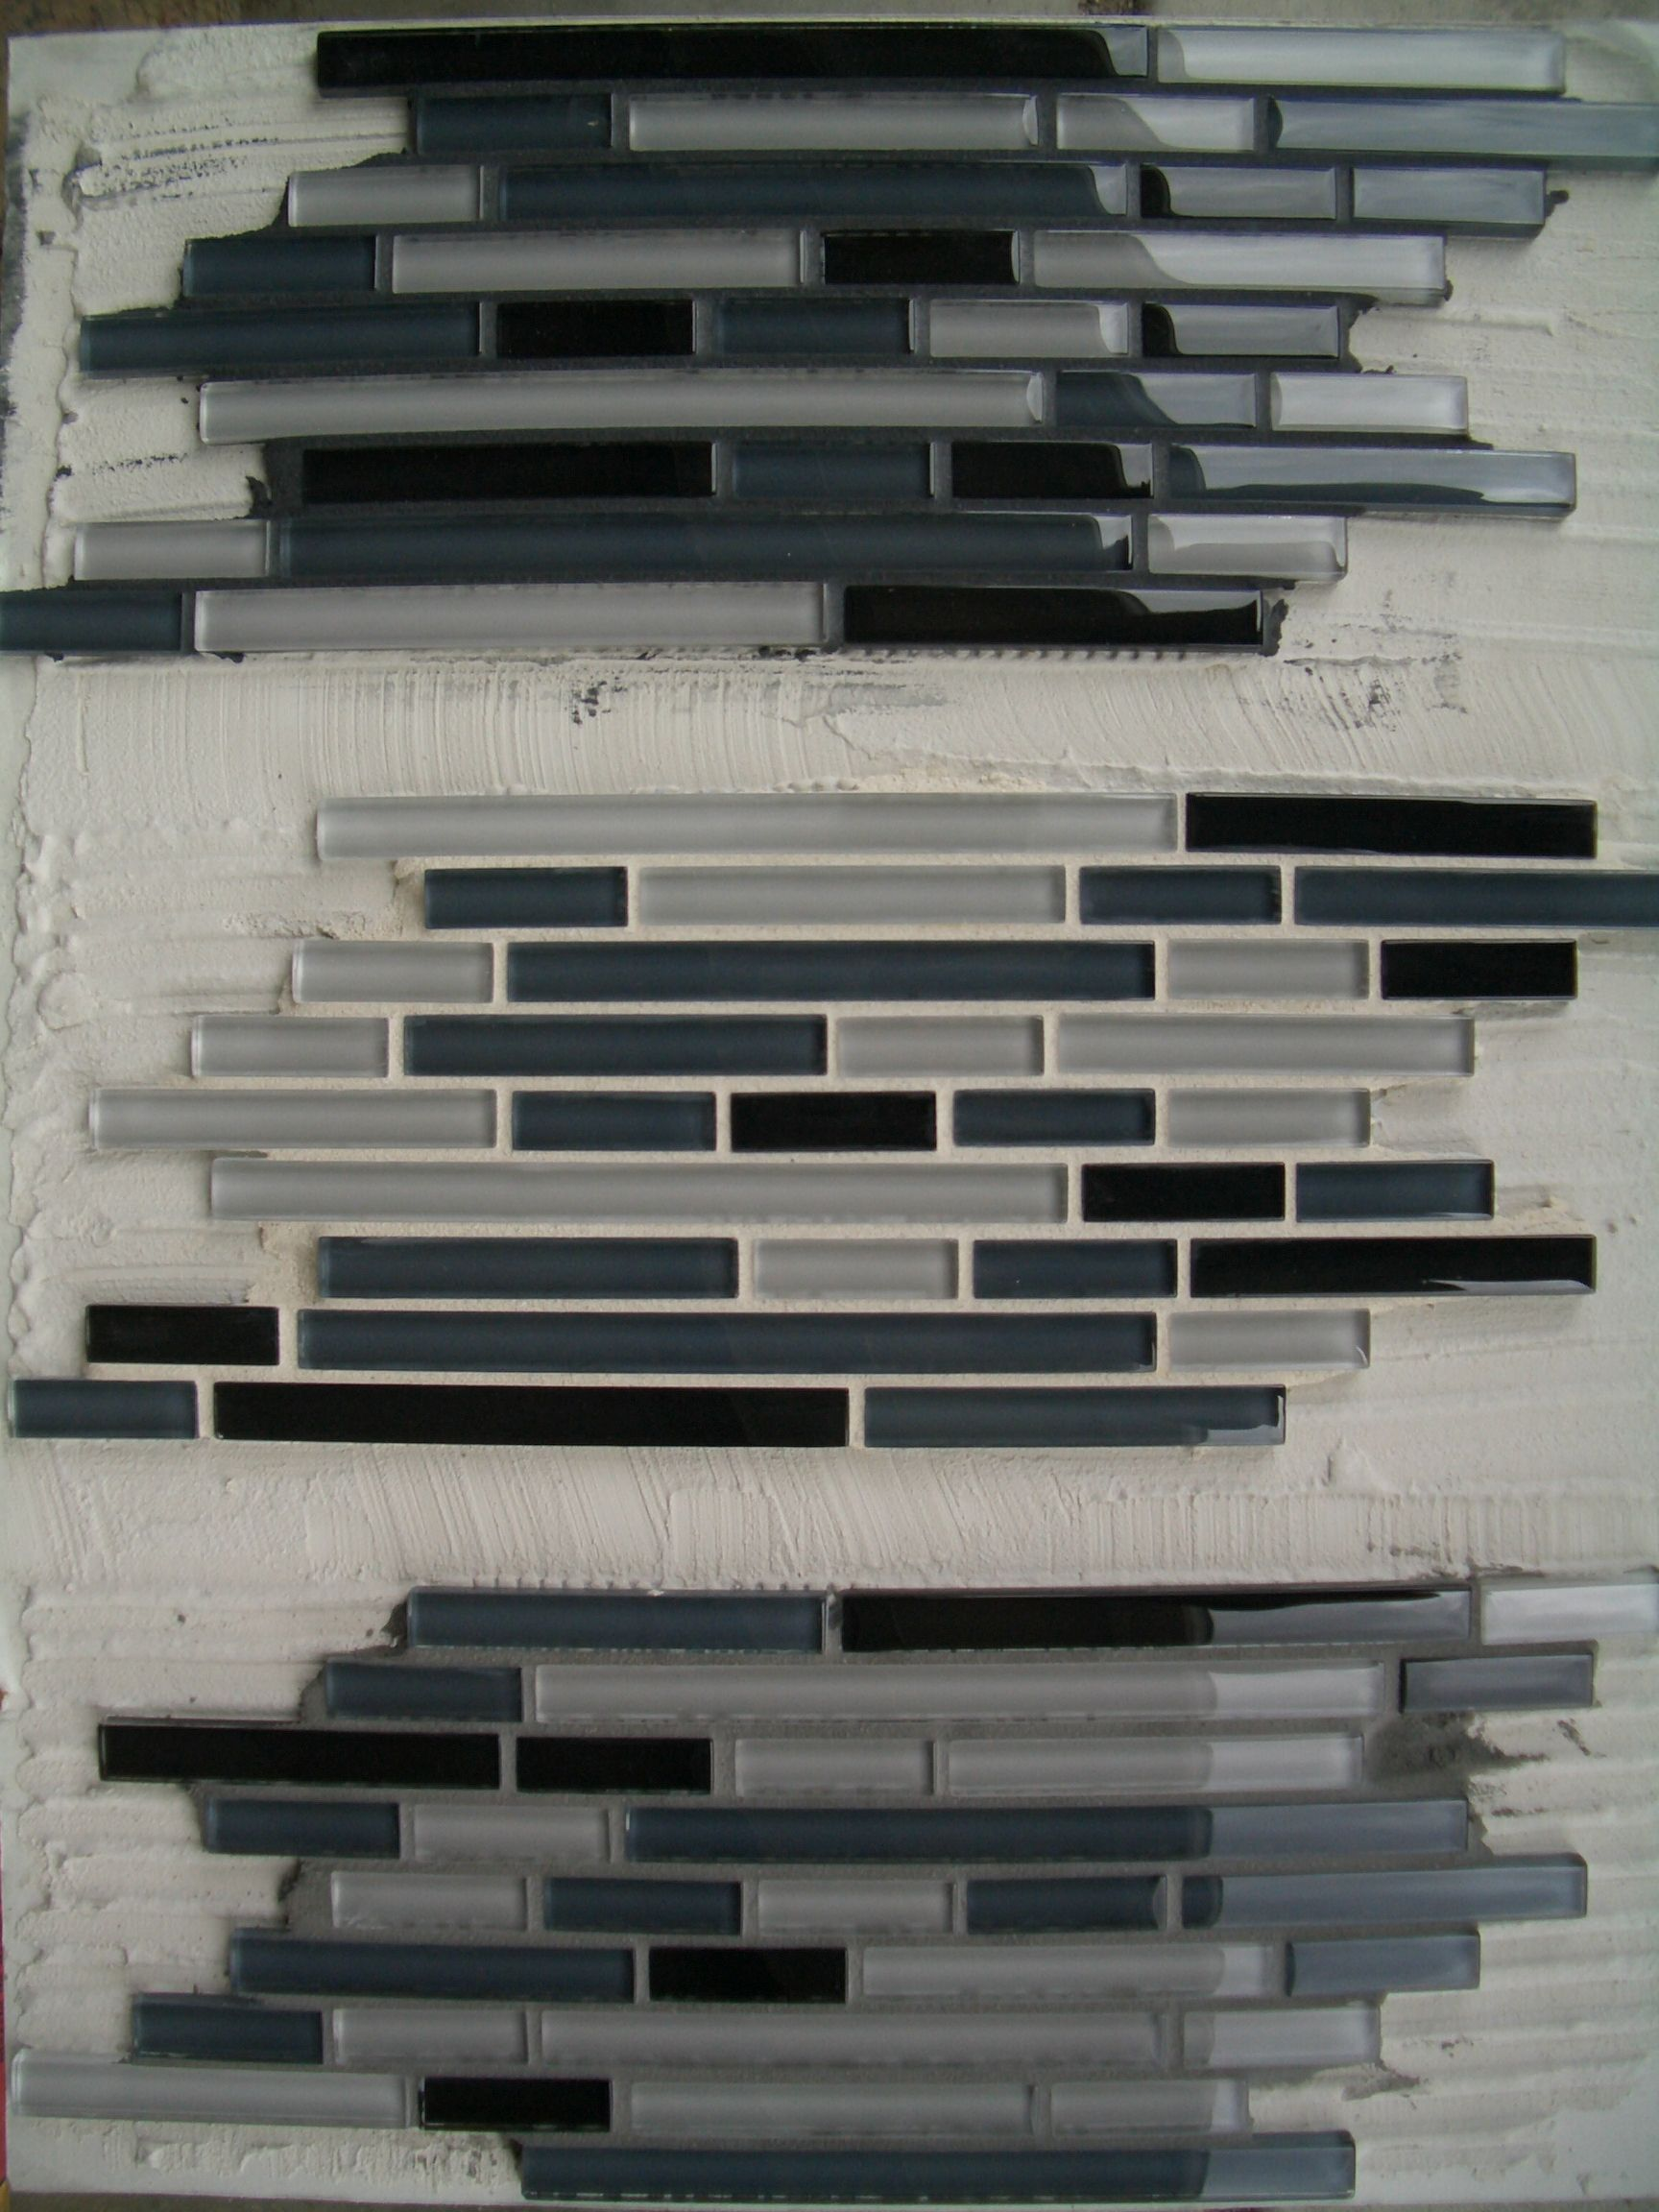 Kitchen Backsplash Grout Color black, white, or gray grout? i am glad someone took the time to